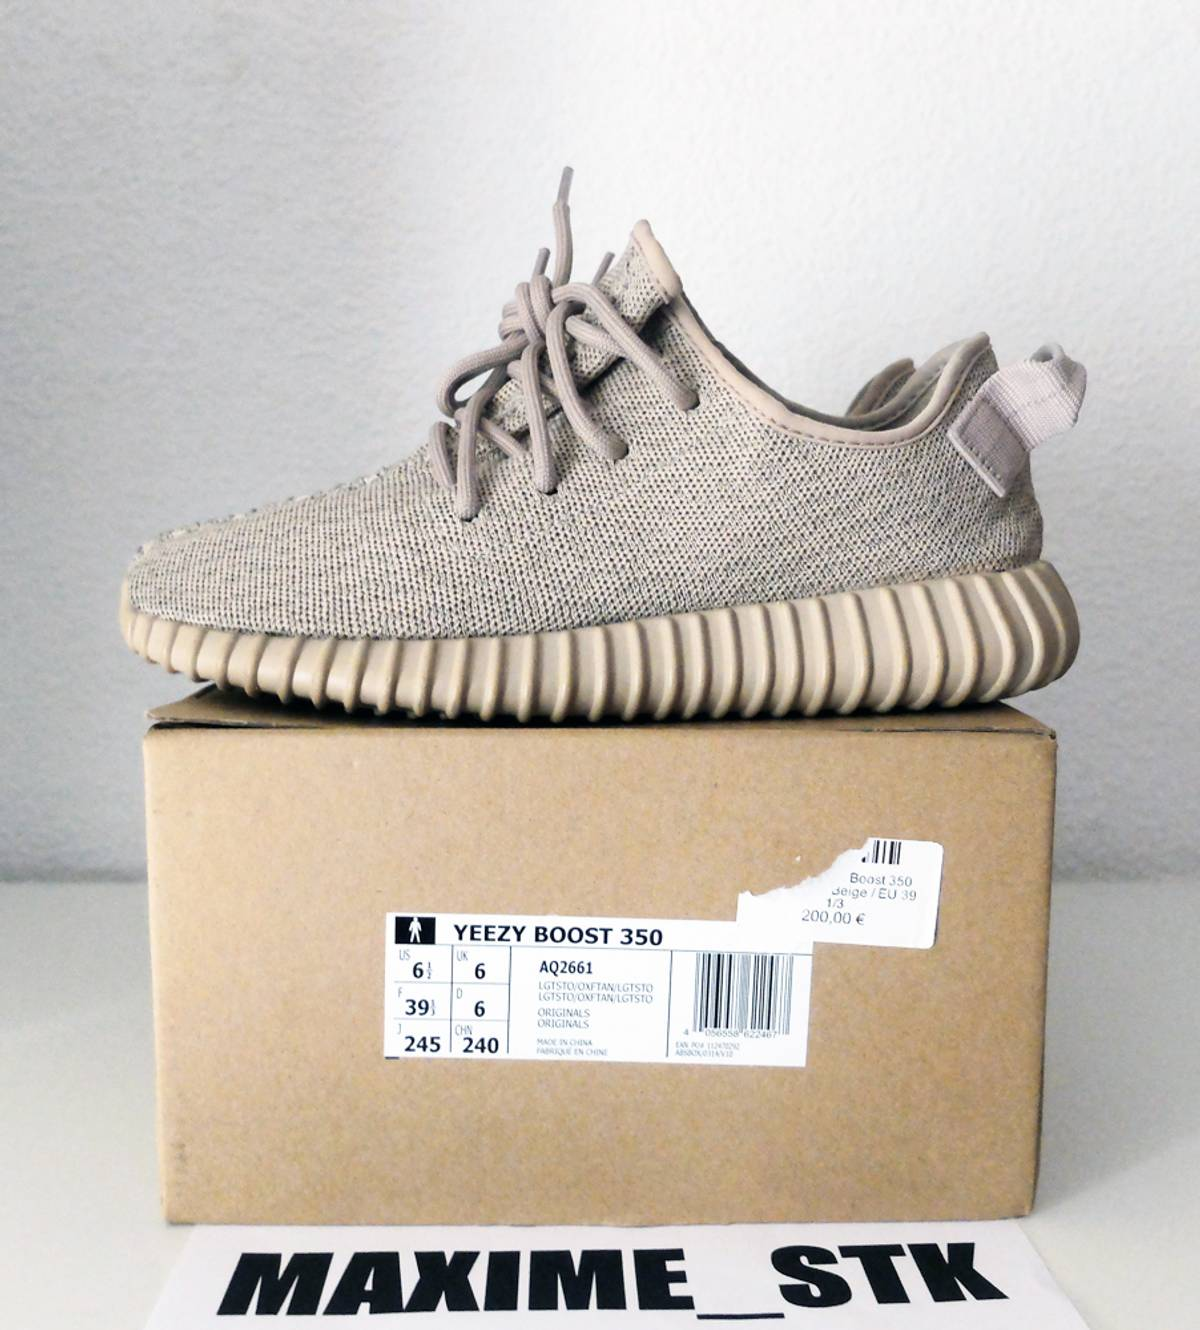 e764628fb48 Discount Yeezy Boost 350 V2 Cream White Real Vs Fake UK 93% Off